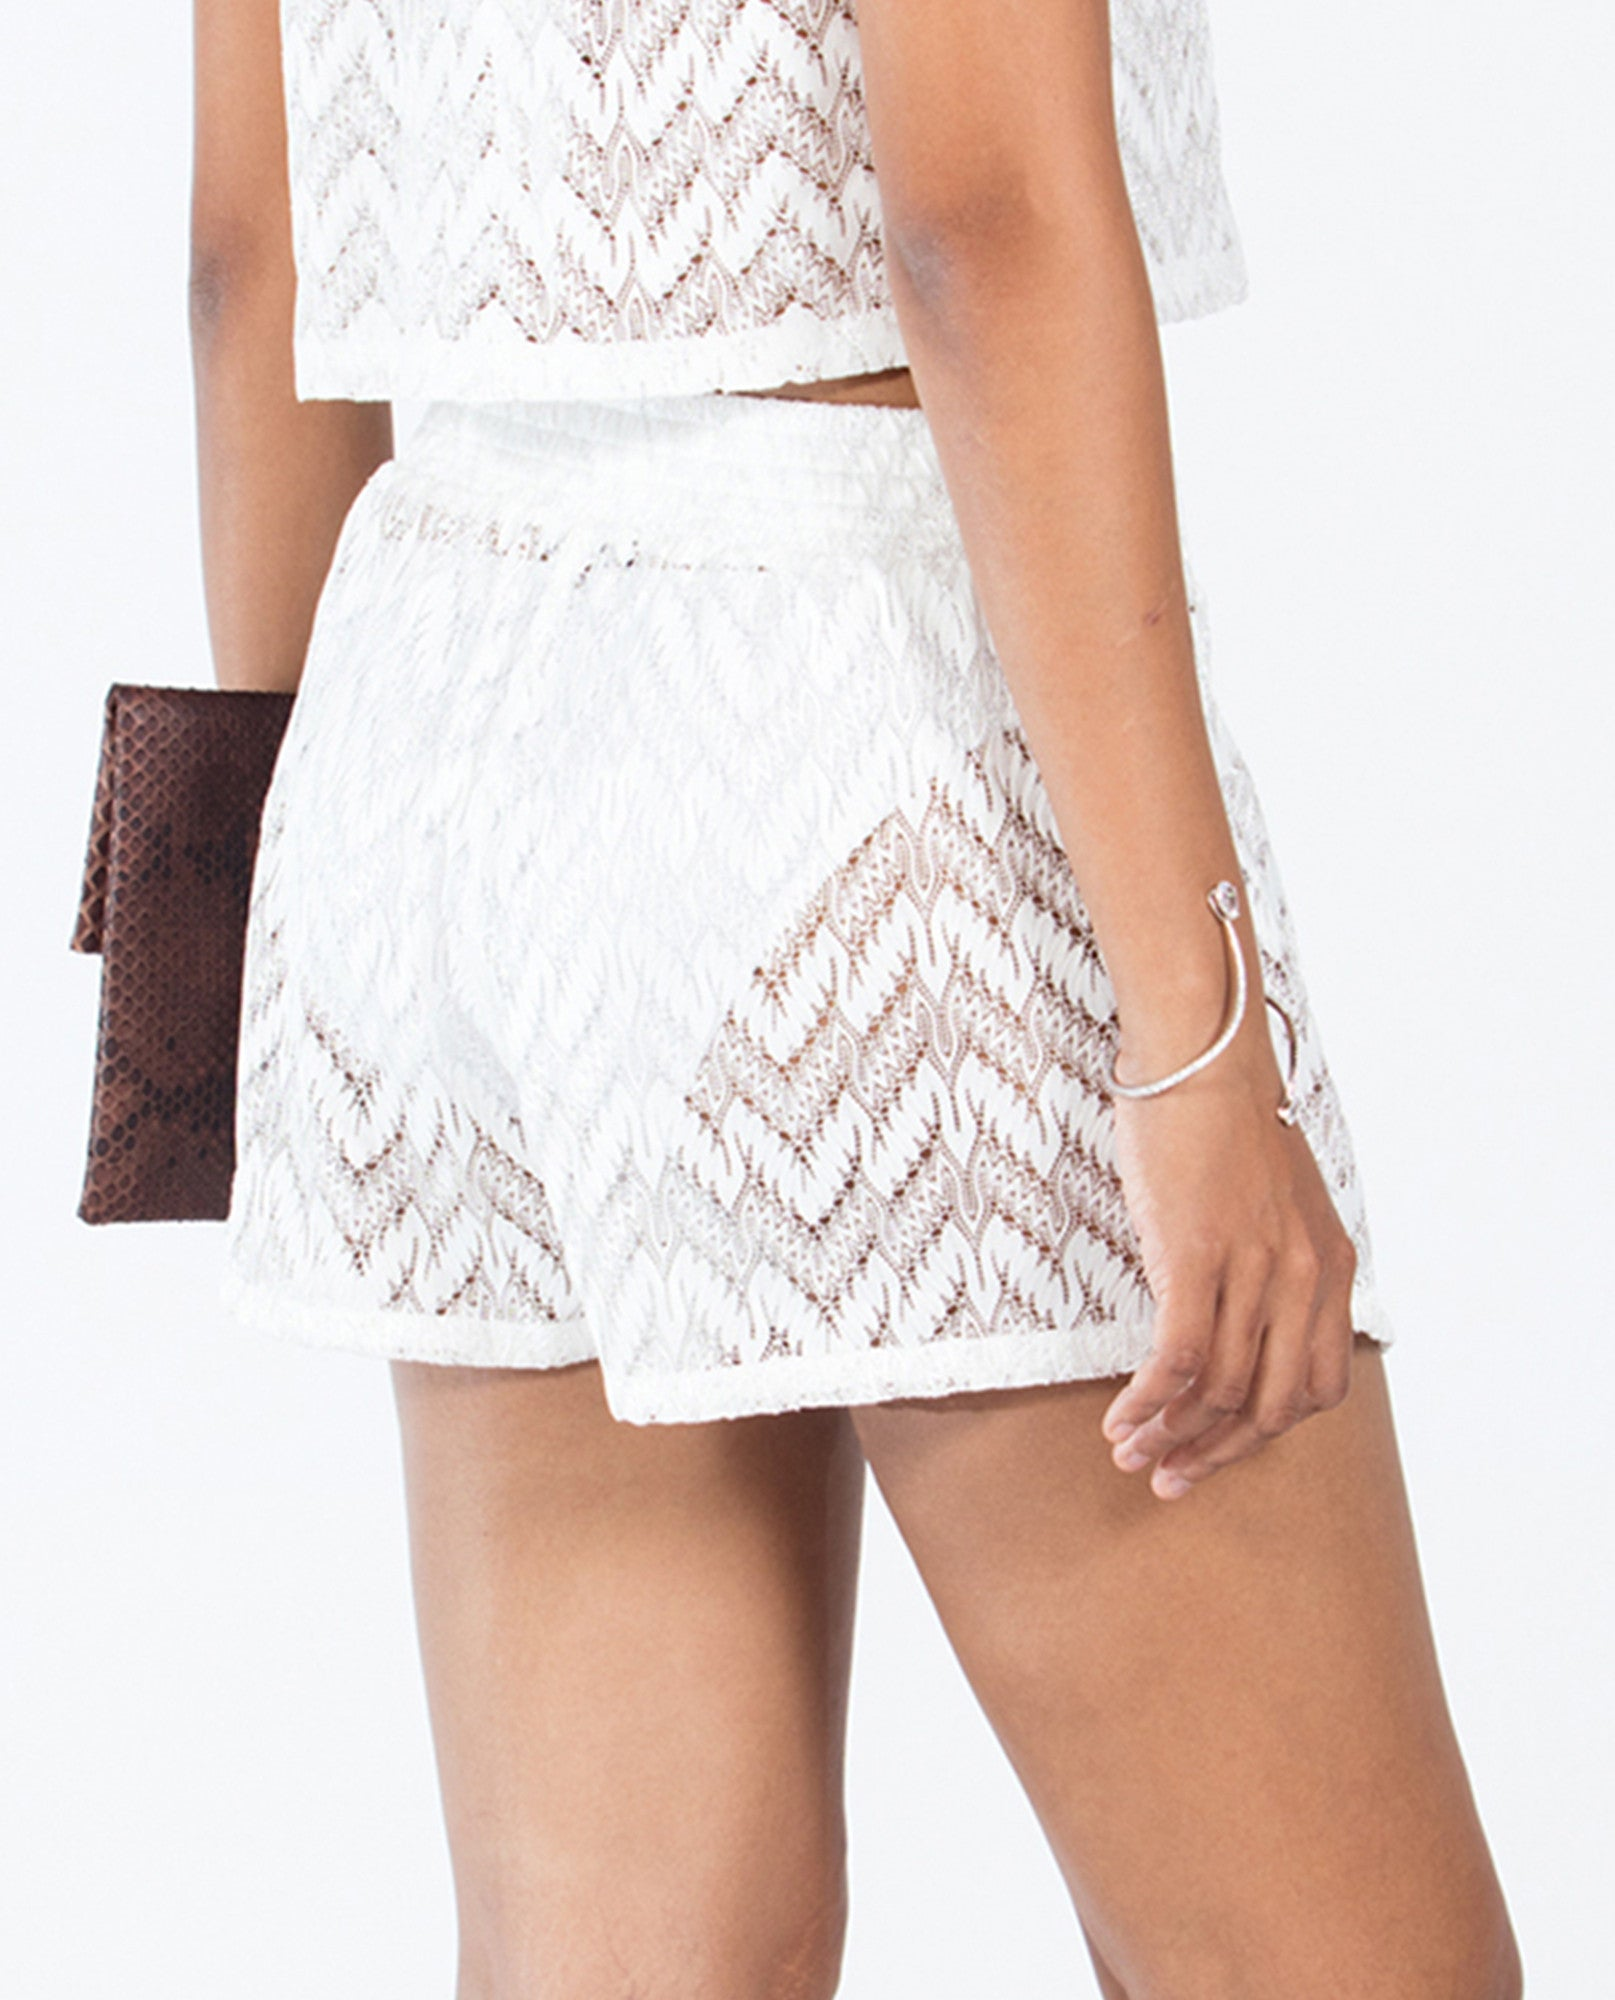 Shorts - Solid White